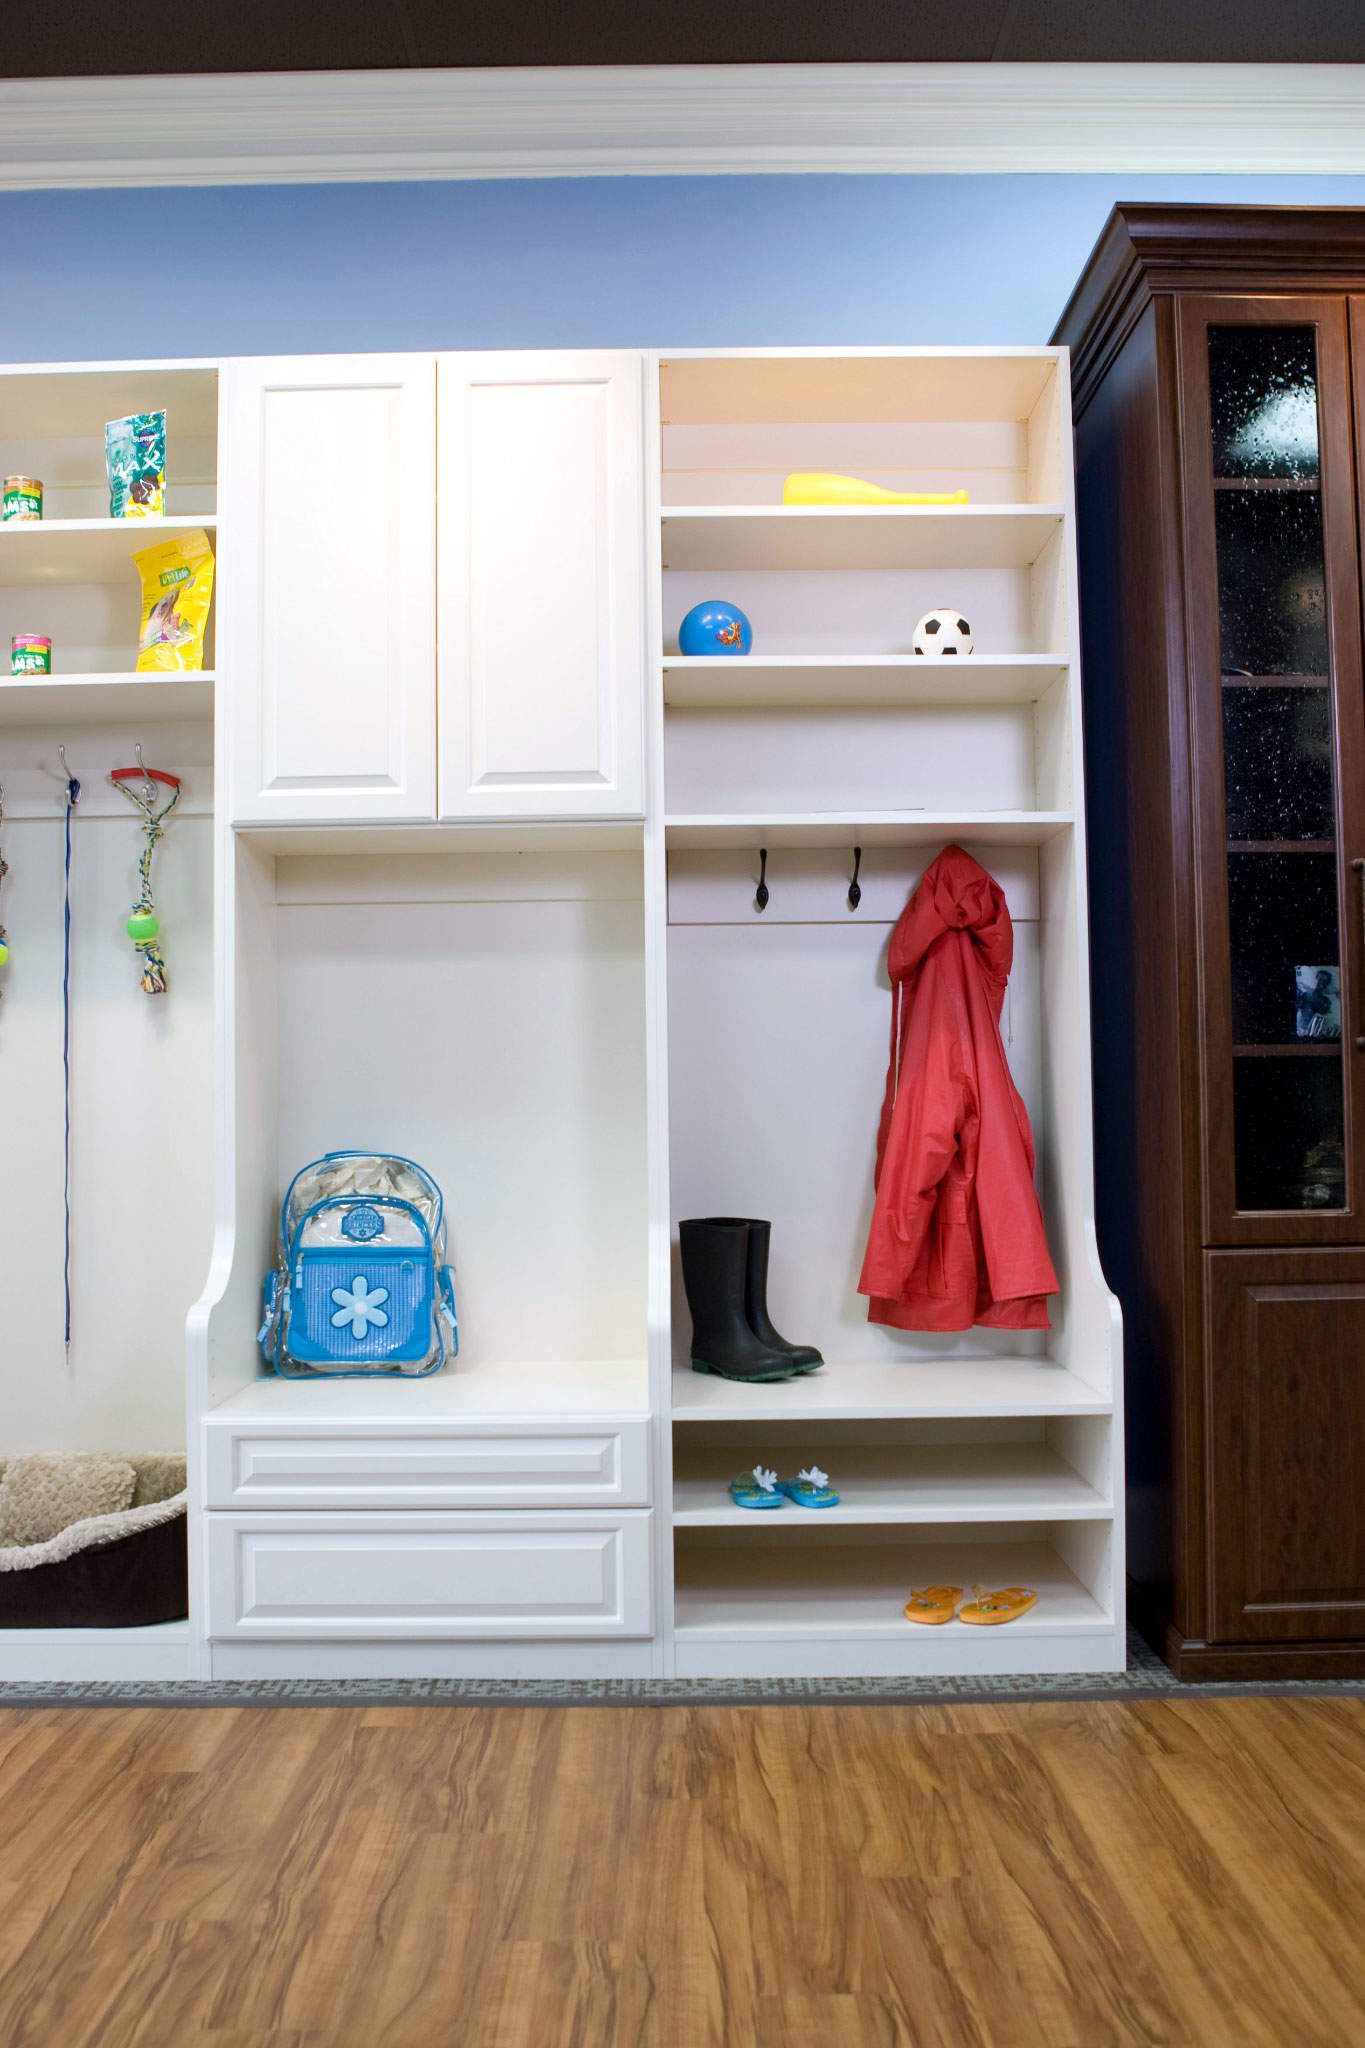 Closed Mudroom Cabinets Provide A Good Way To Keep Your Active Family  Organized. Elongated Cabinets In A Built In Mudroom Organizer Provide A  Space To Store ...